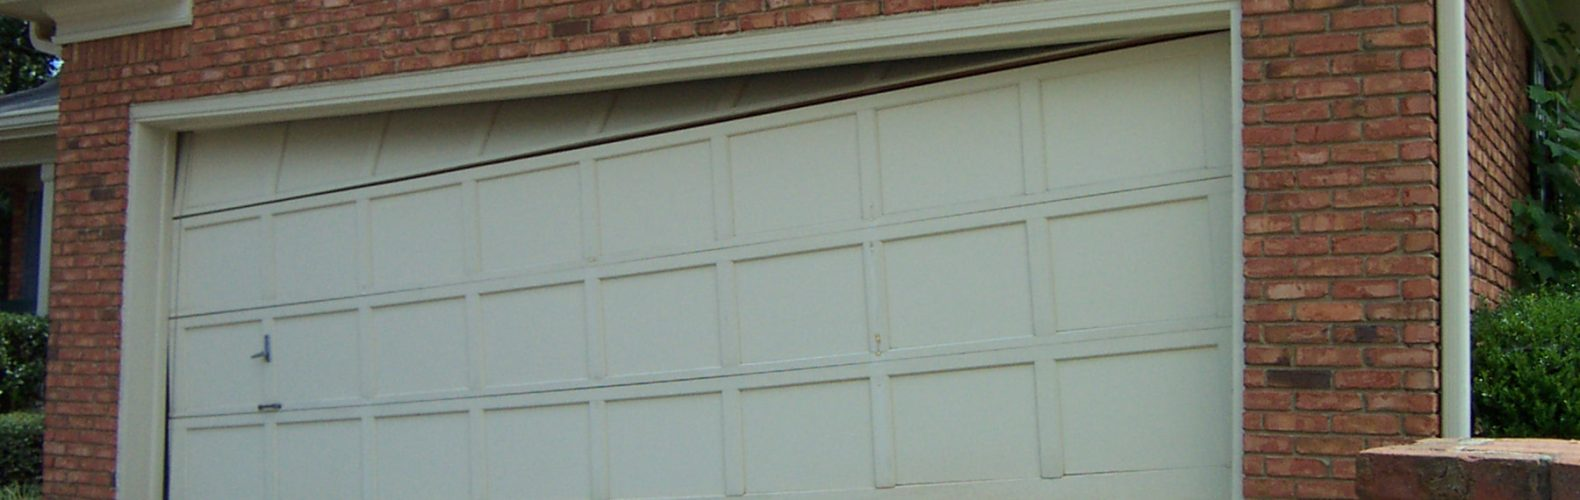 Garage Door Repairs Springs And Rollers